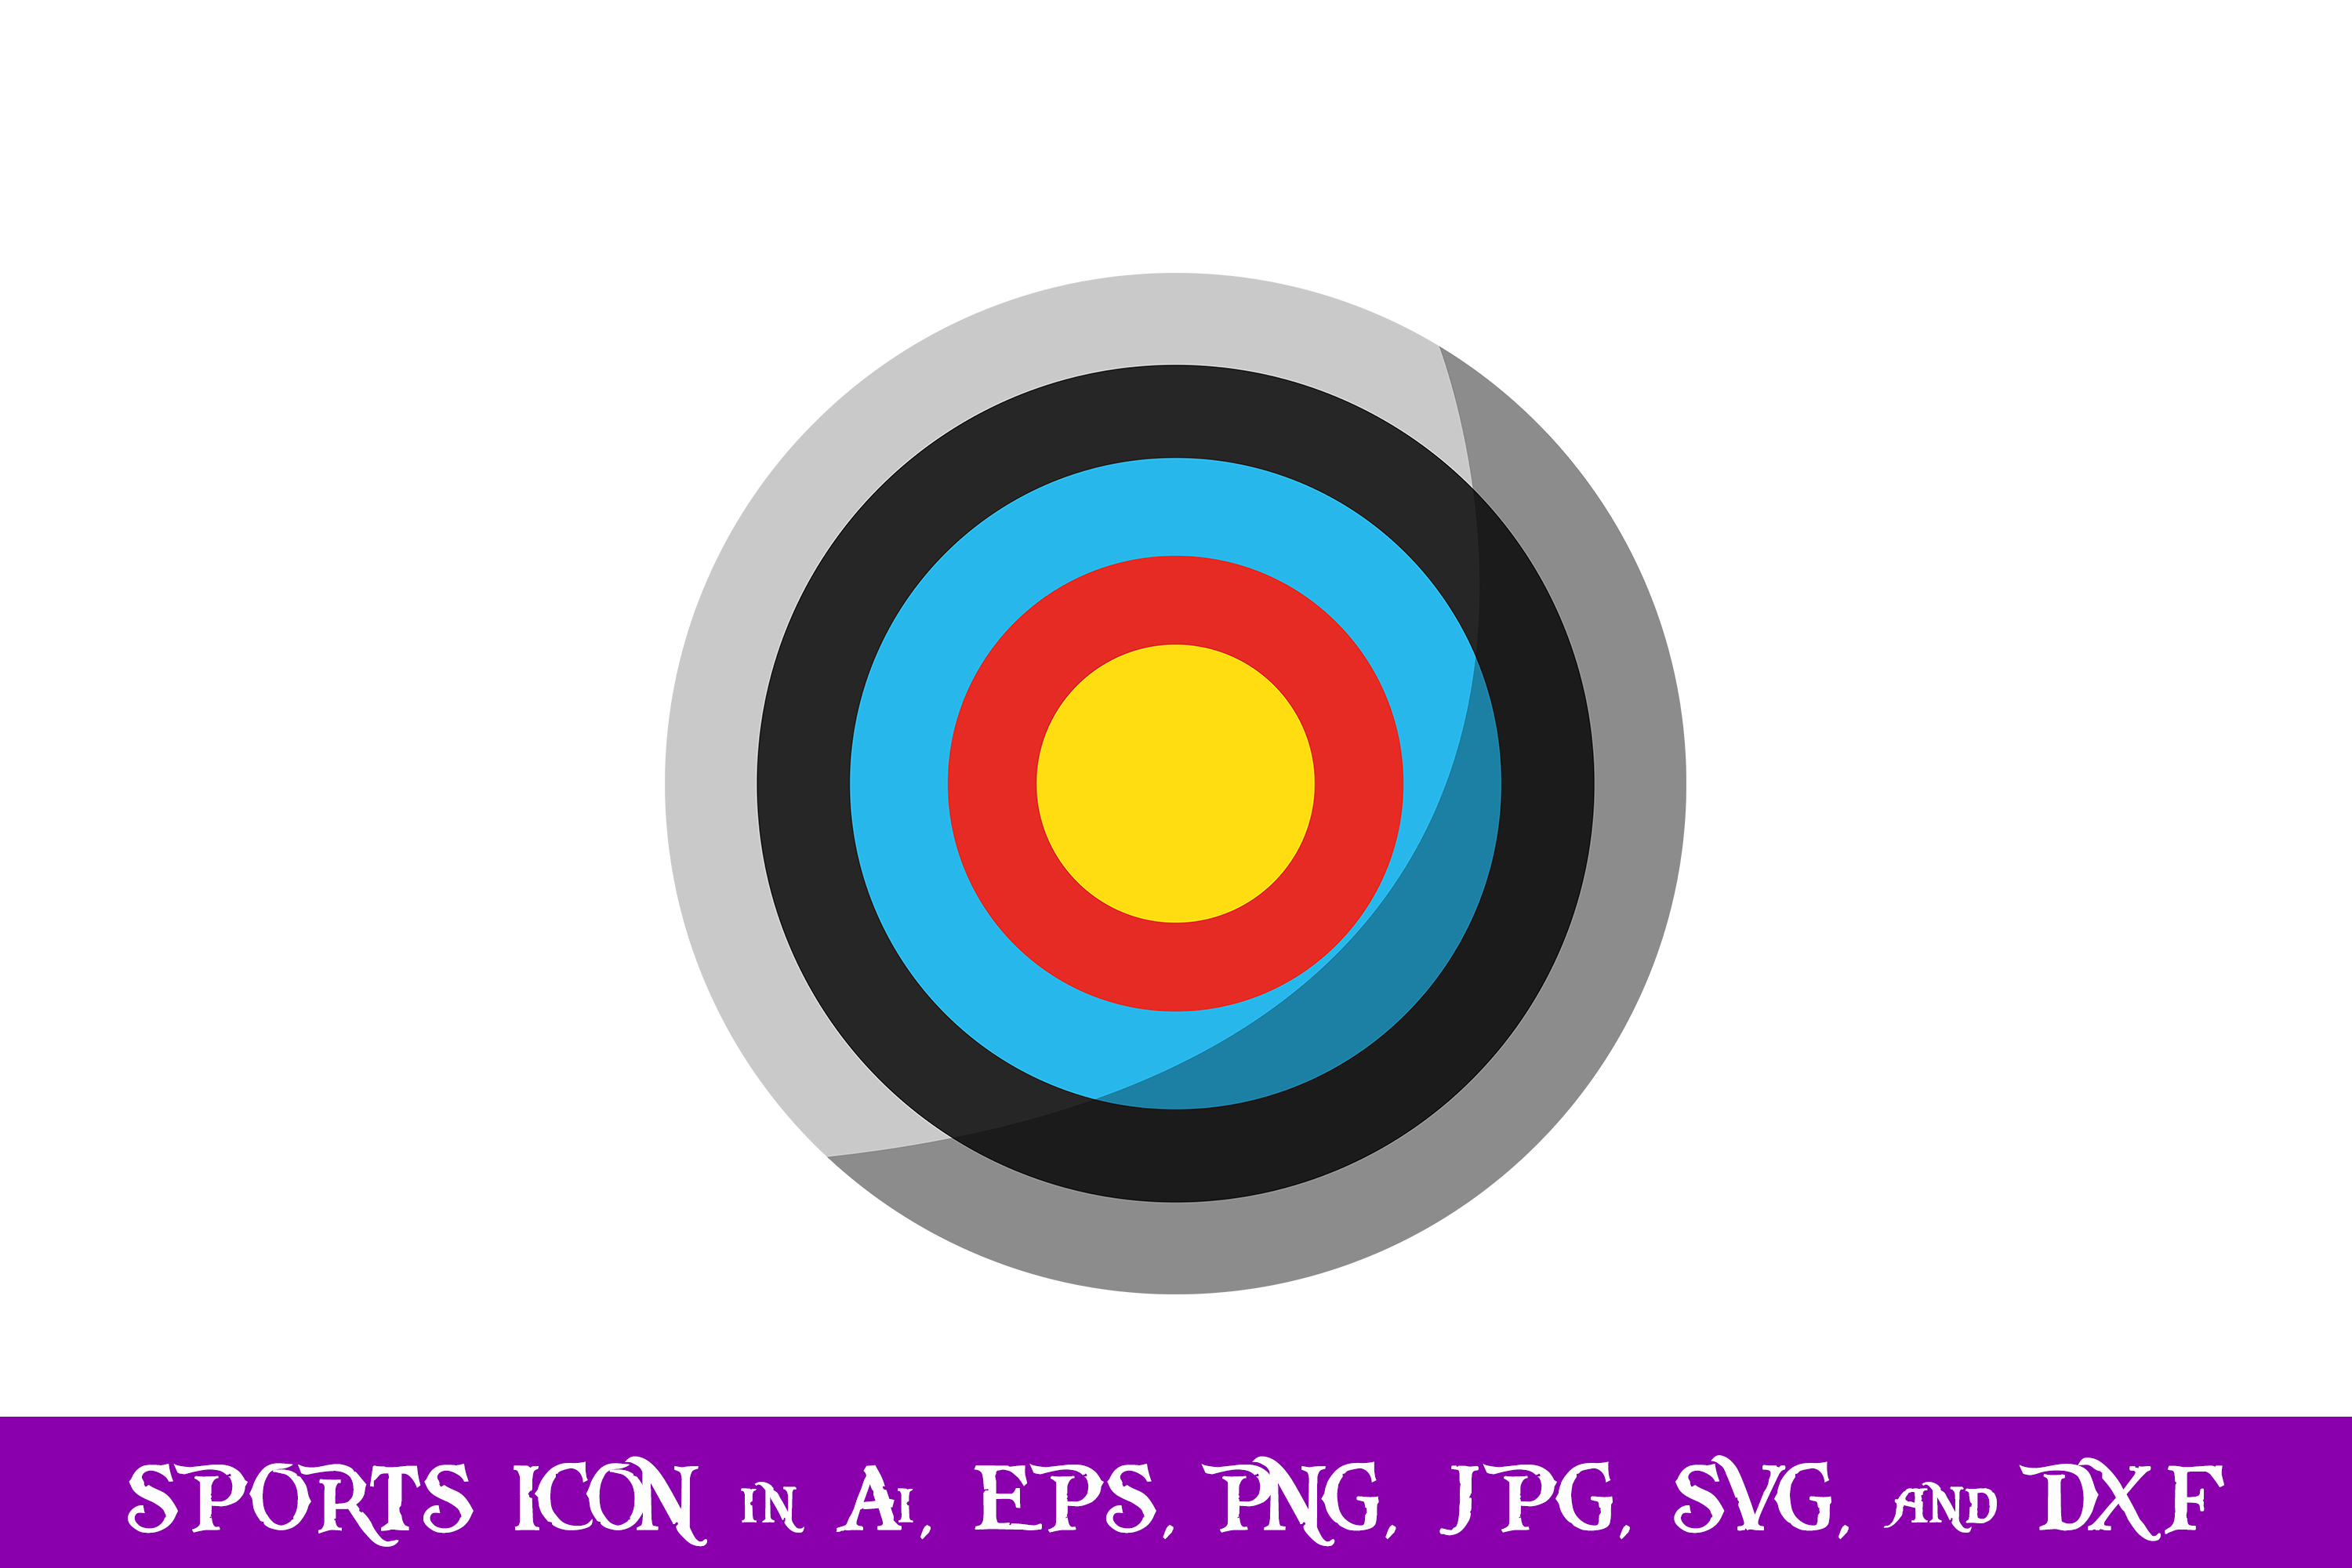 Archery Target Sport Icon Graphic By Purplespoonpirates